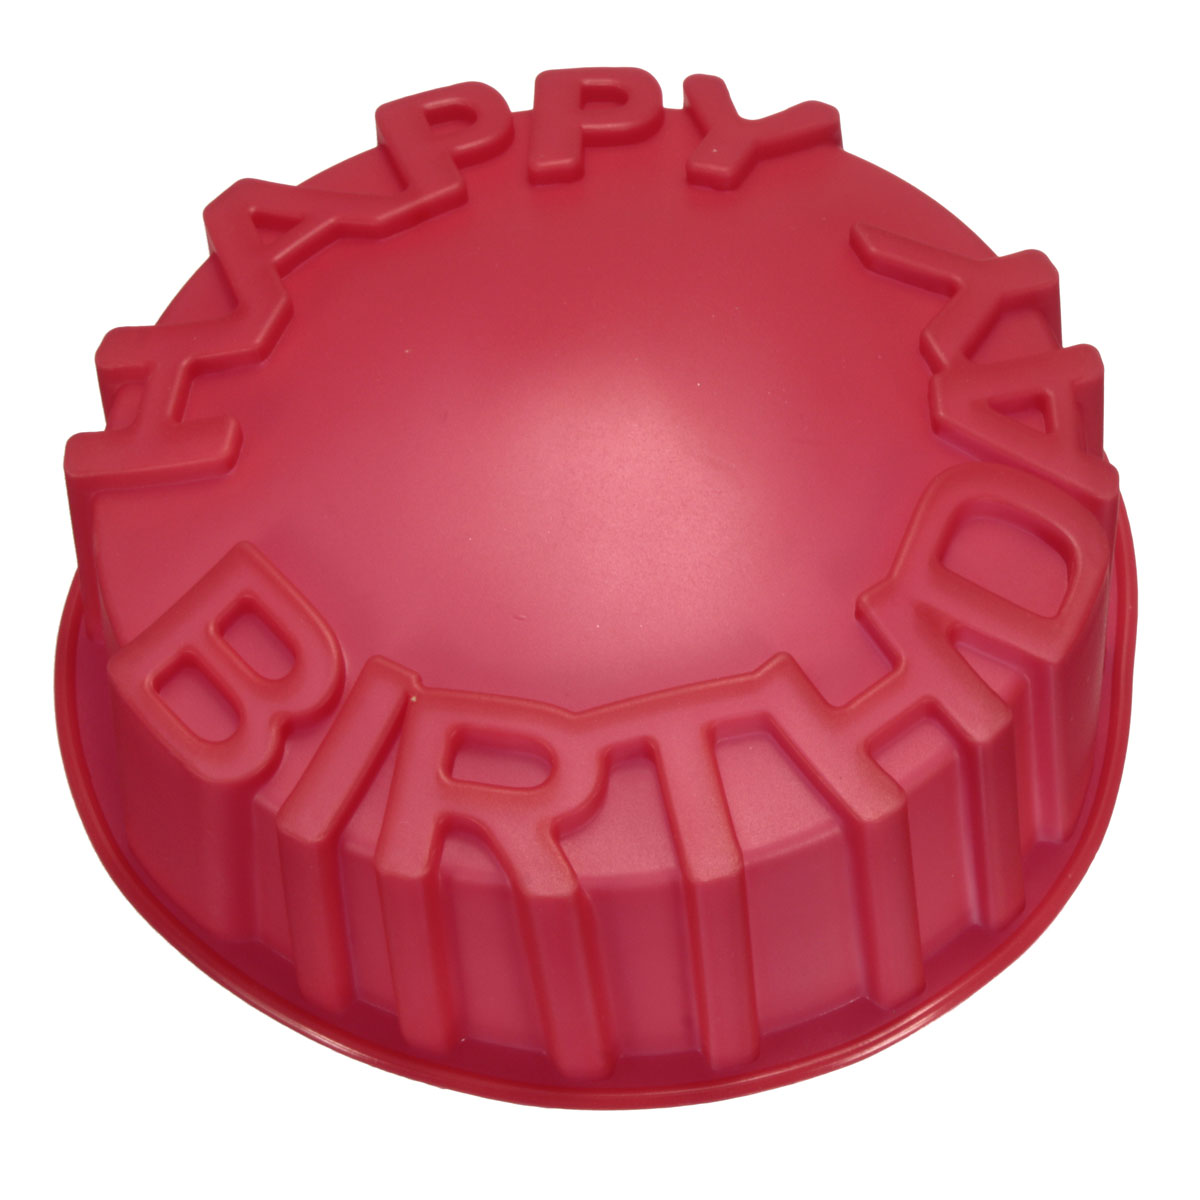 Happy Birthday Silicone Cake Pan Cheese Jelly Pudding